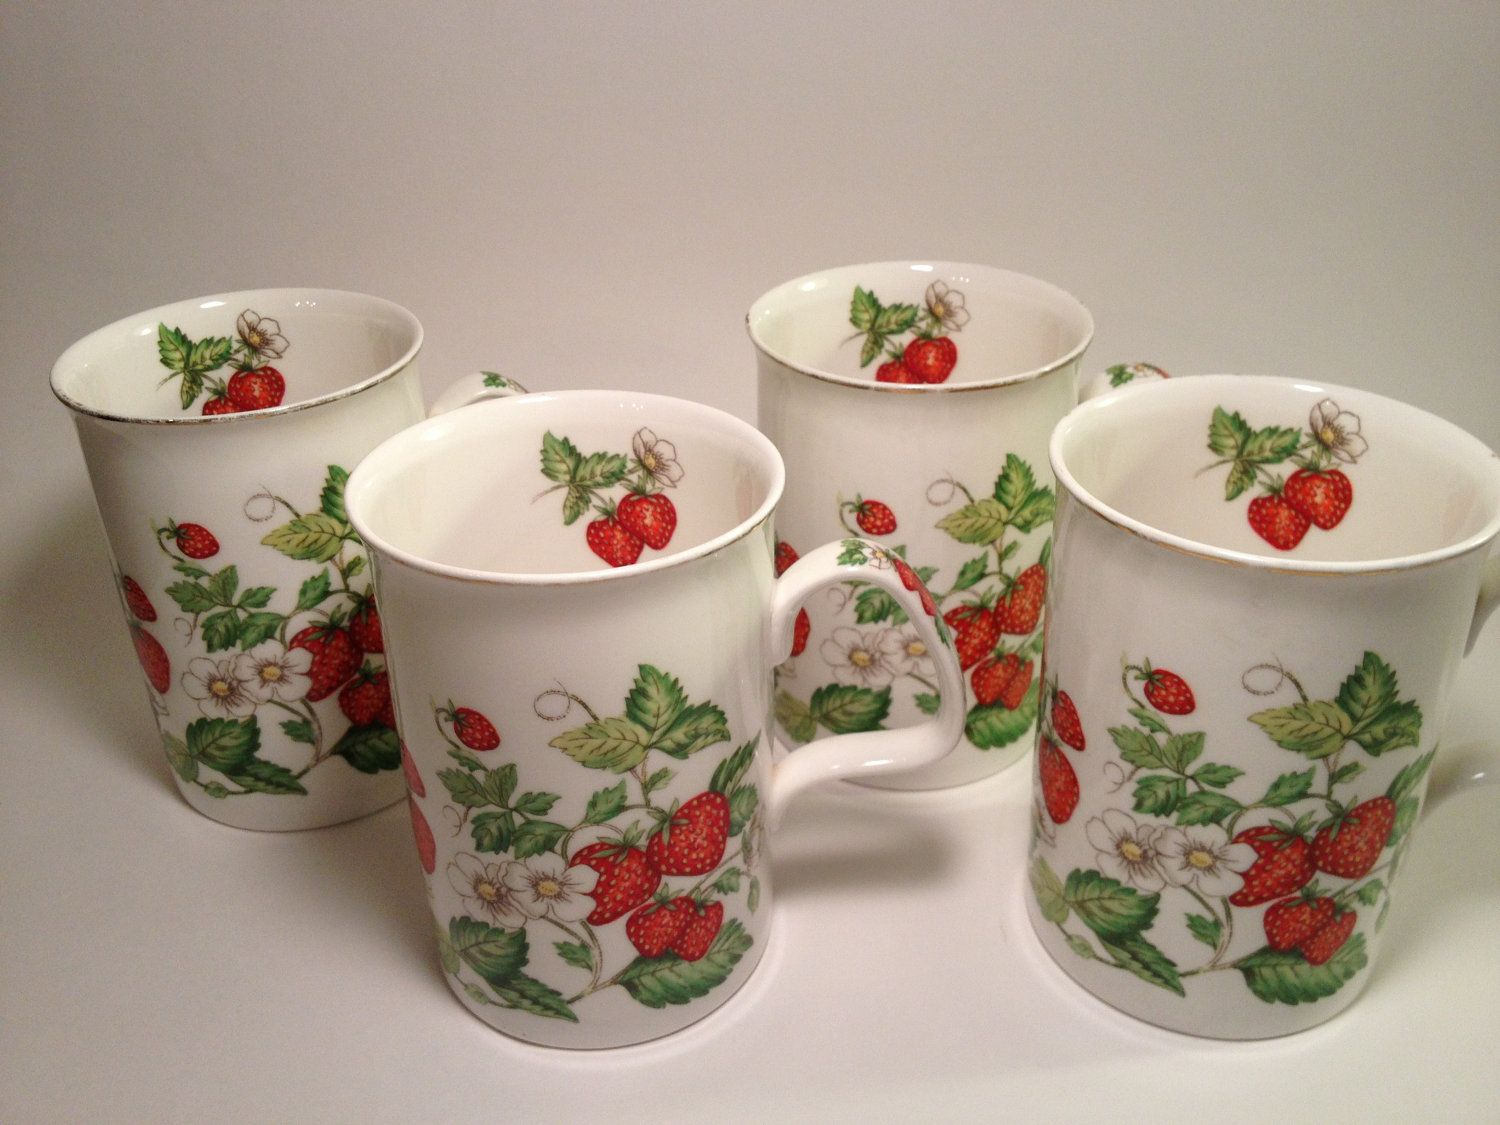 4 Roy Kirkham Strawberry Fayre Fine Bone China Mugs, England, Porcelain, Ceramic, Fruit, Christmas Holiday Cups. $39.50, via Etsy.